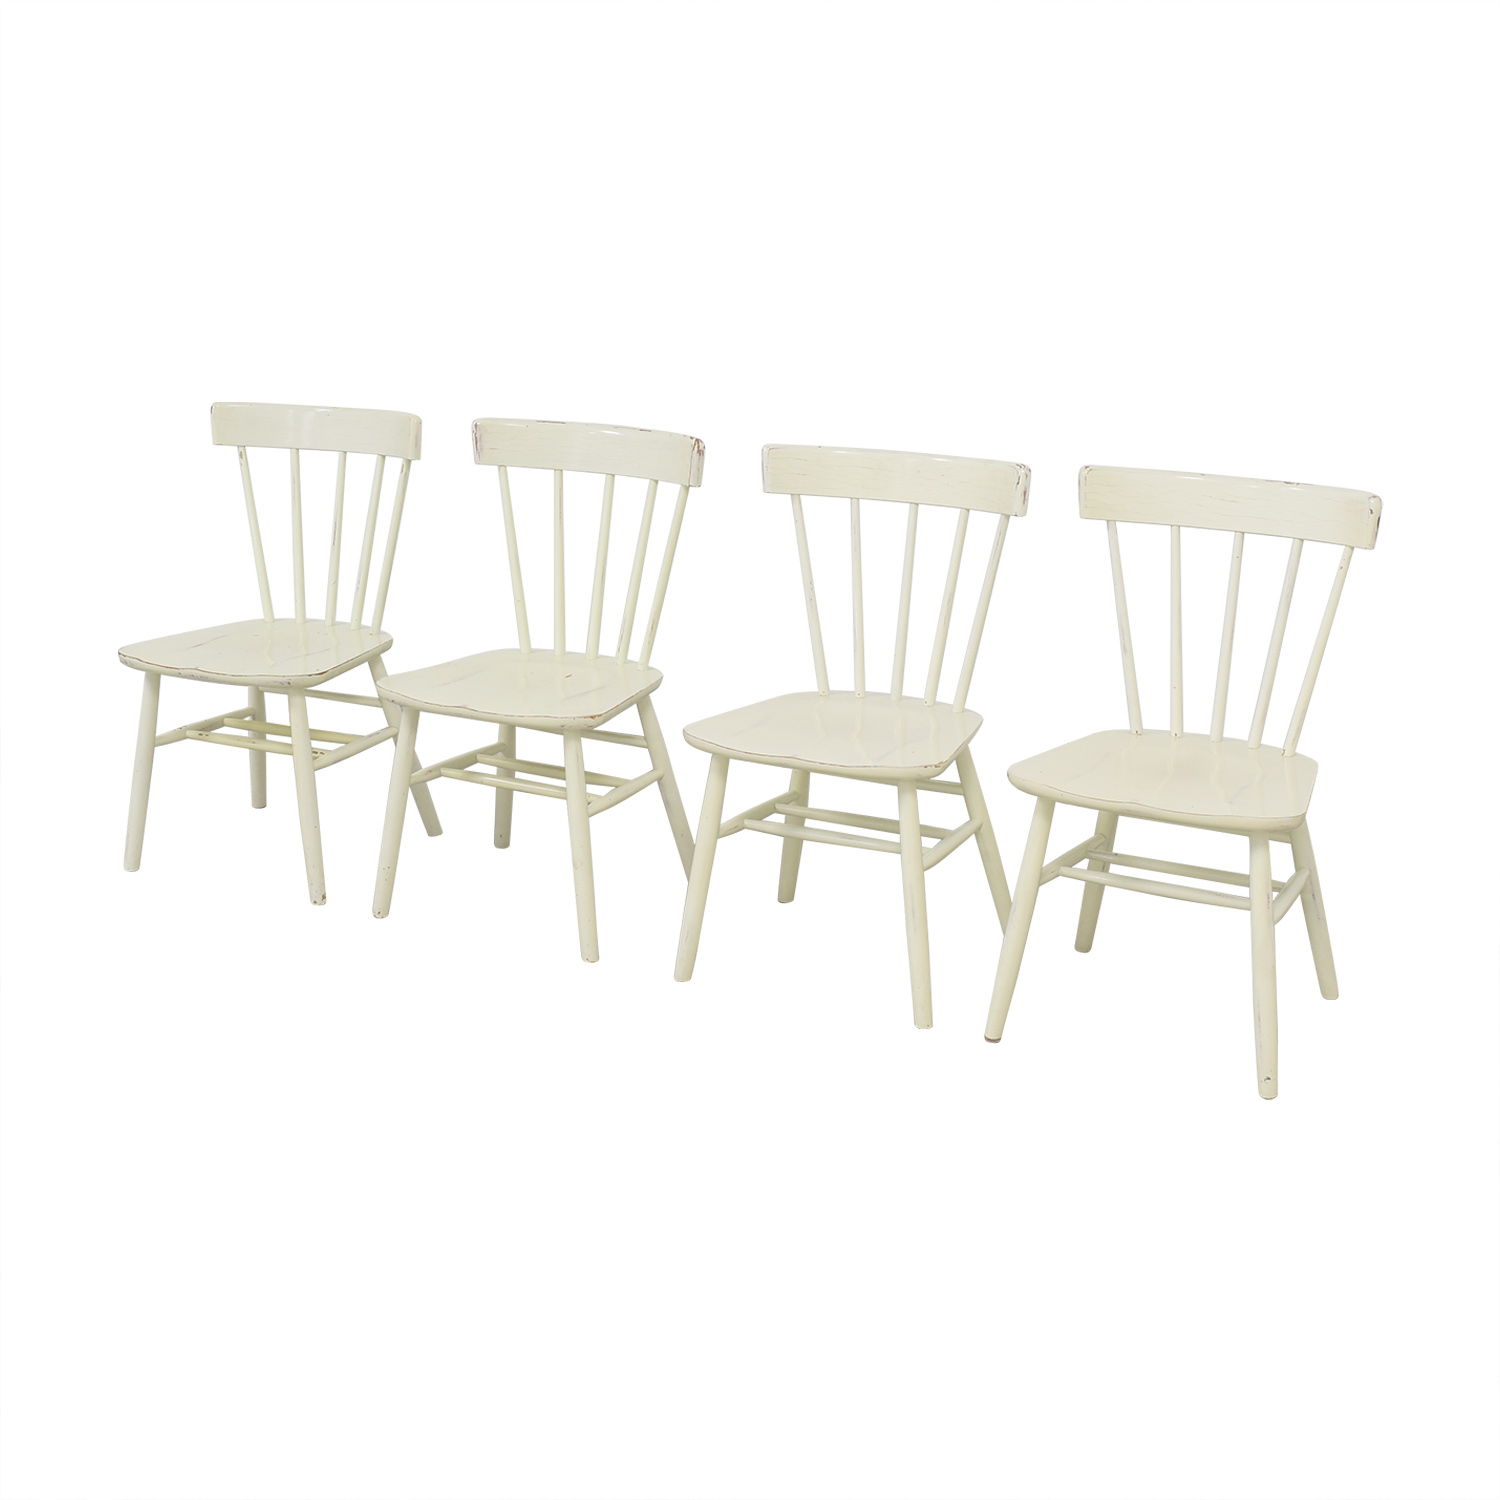 Pottery Barn Pottery Barn Rustic Dining Chairs ct